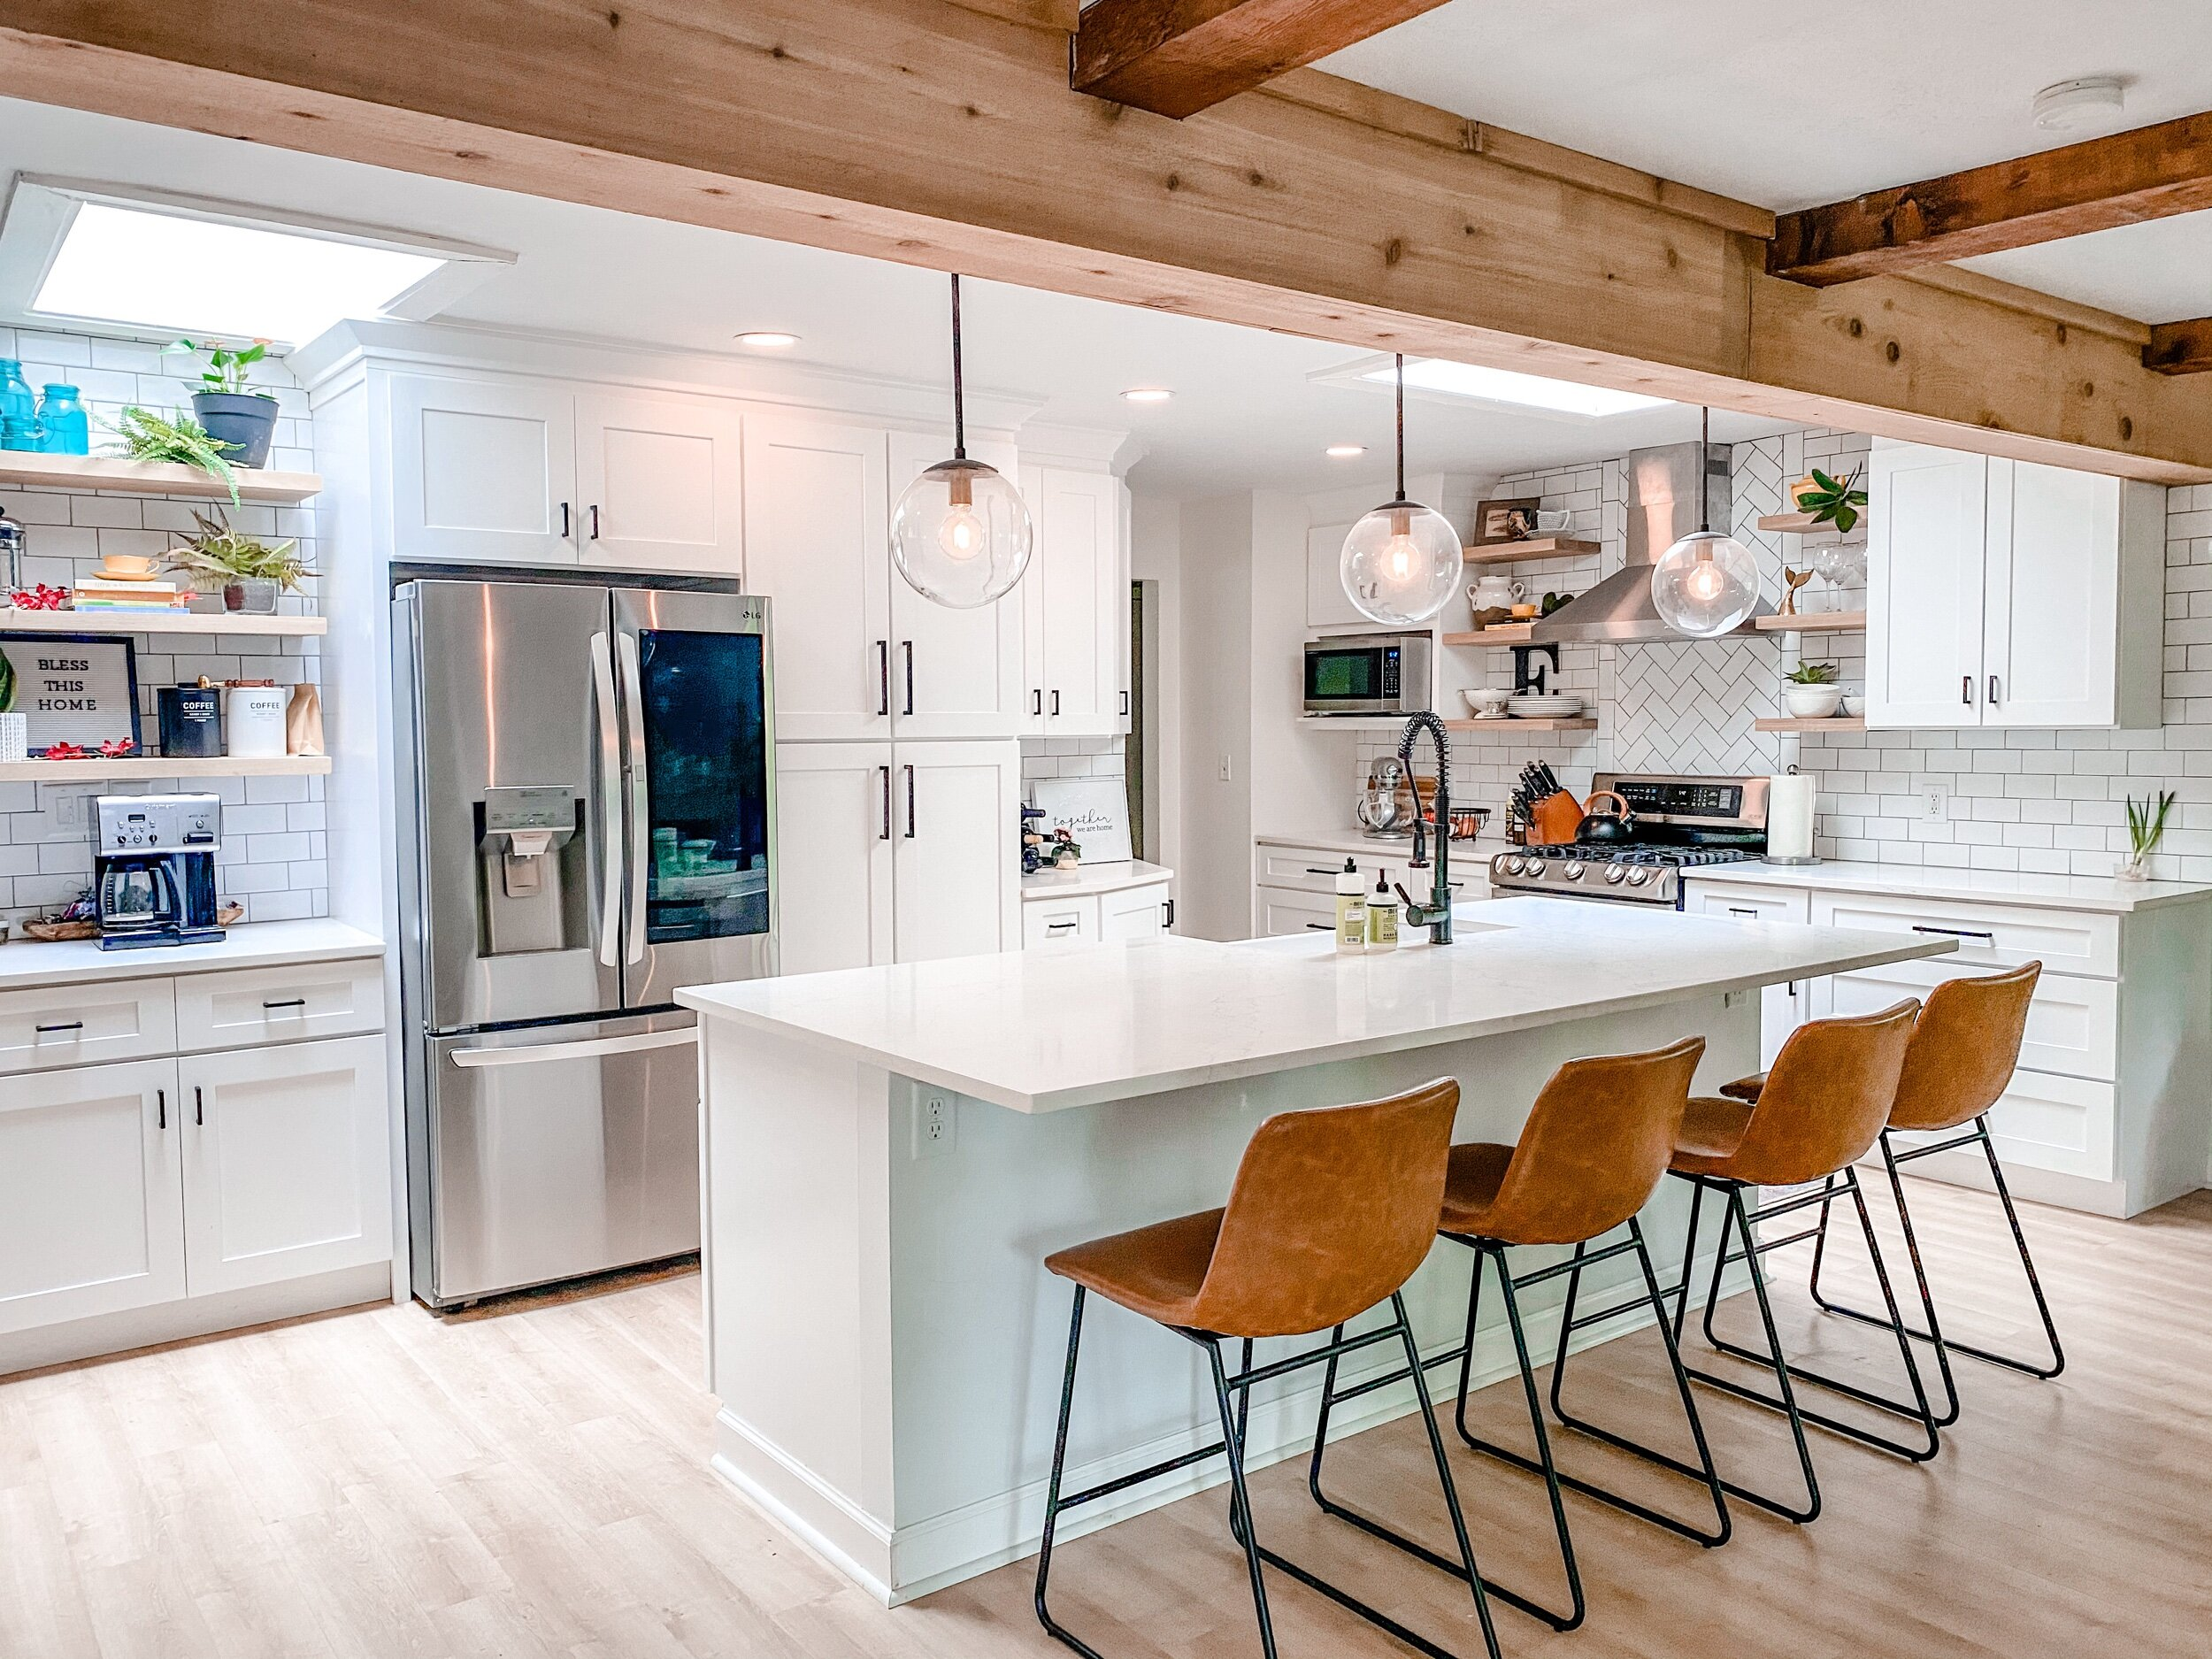 14 things I learned while renovating our modern farmhouse